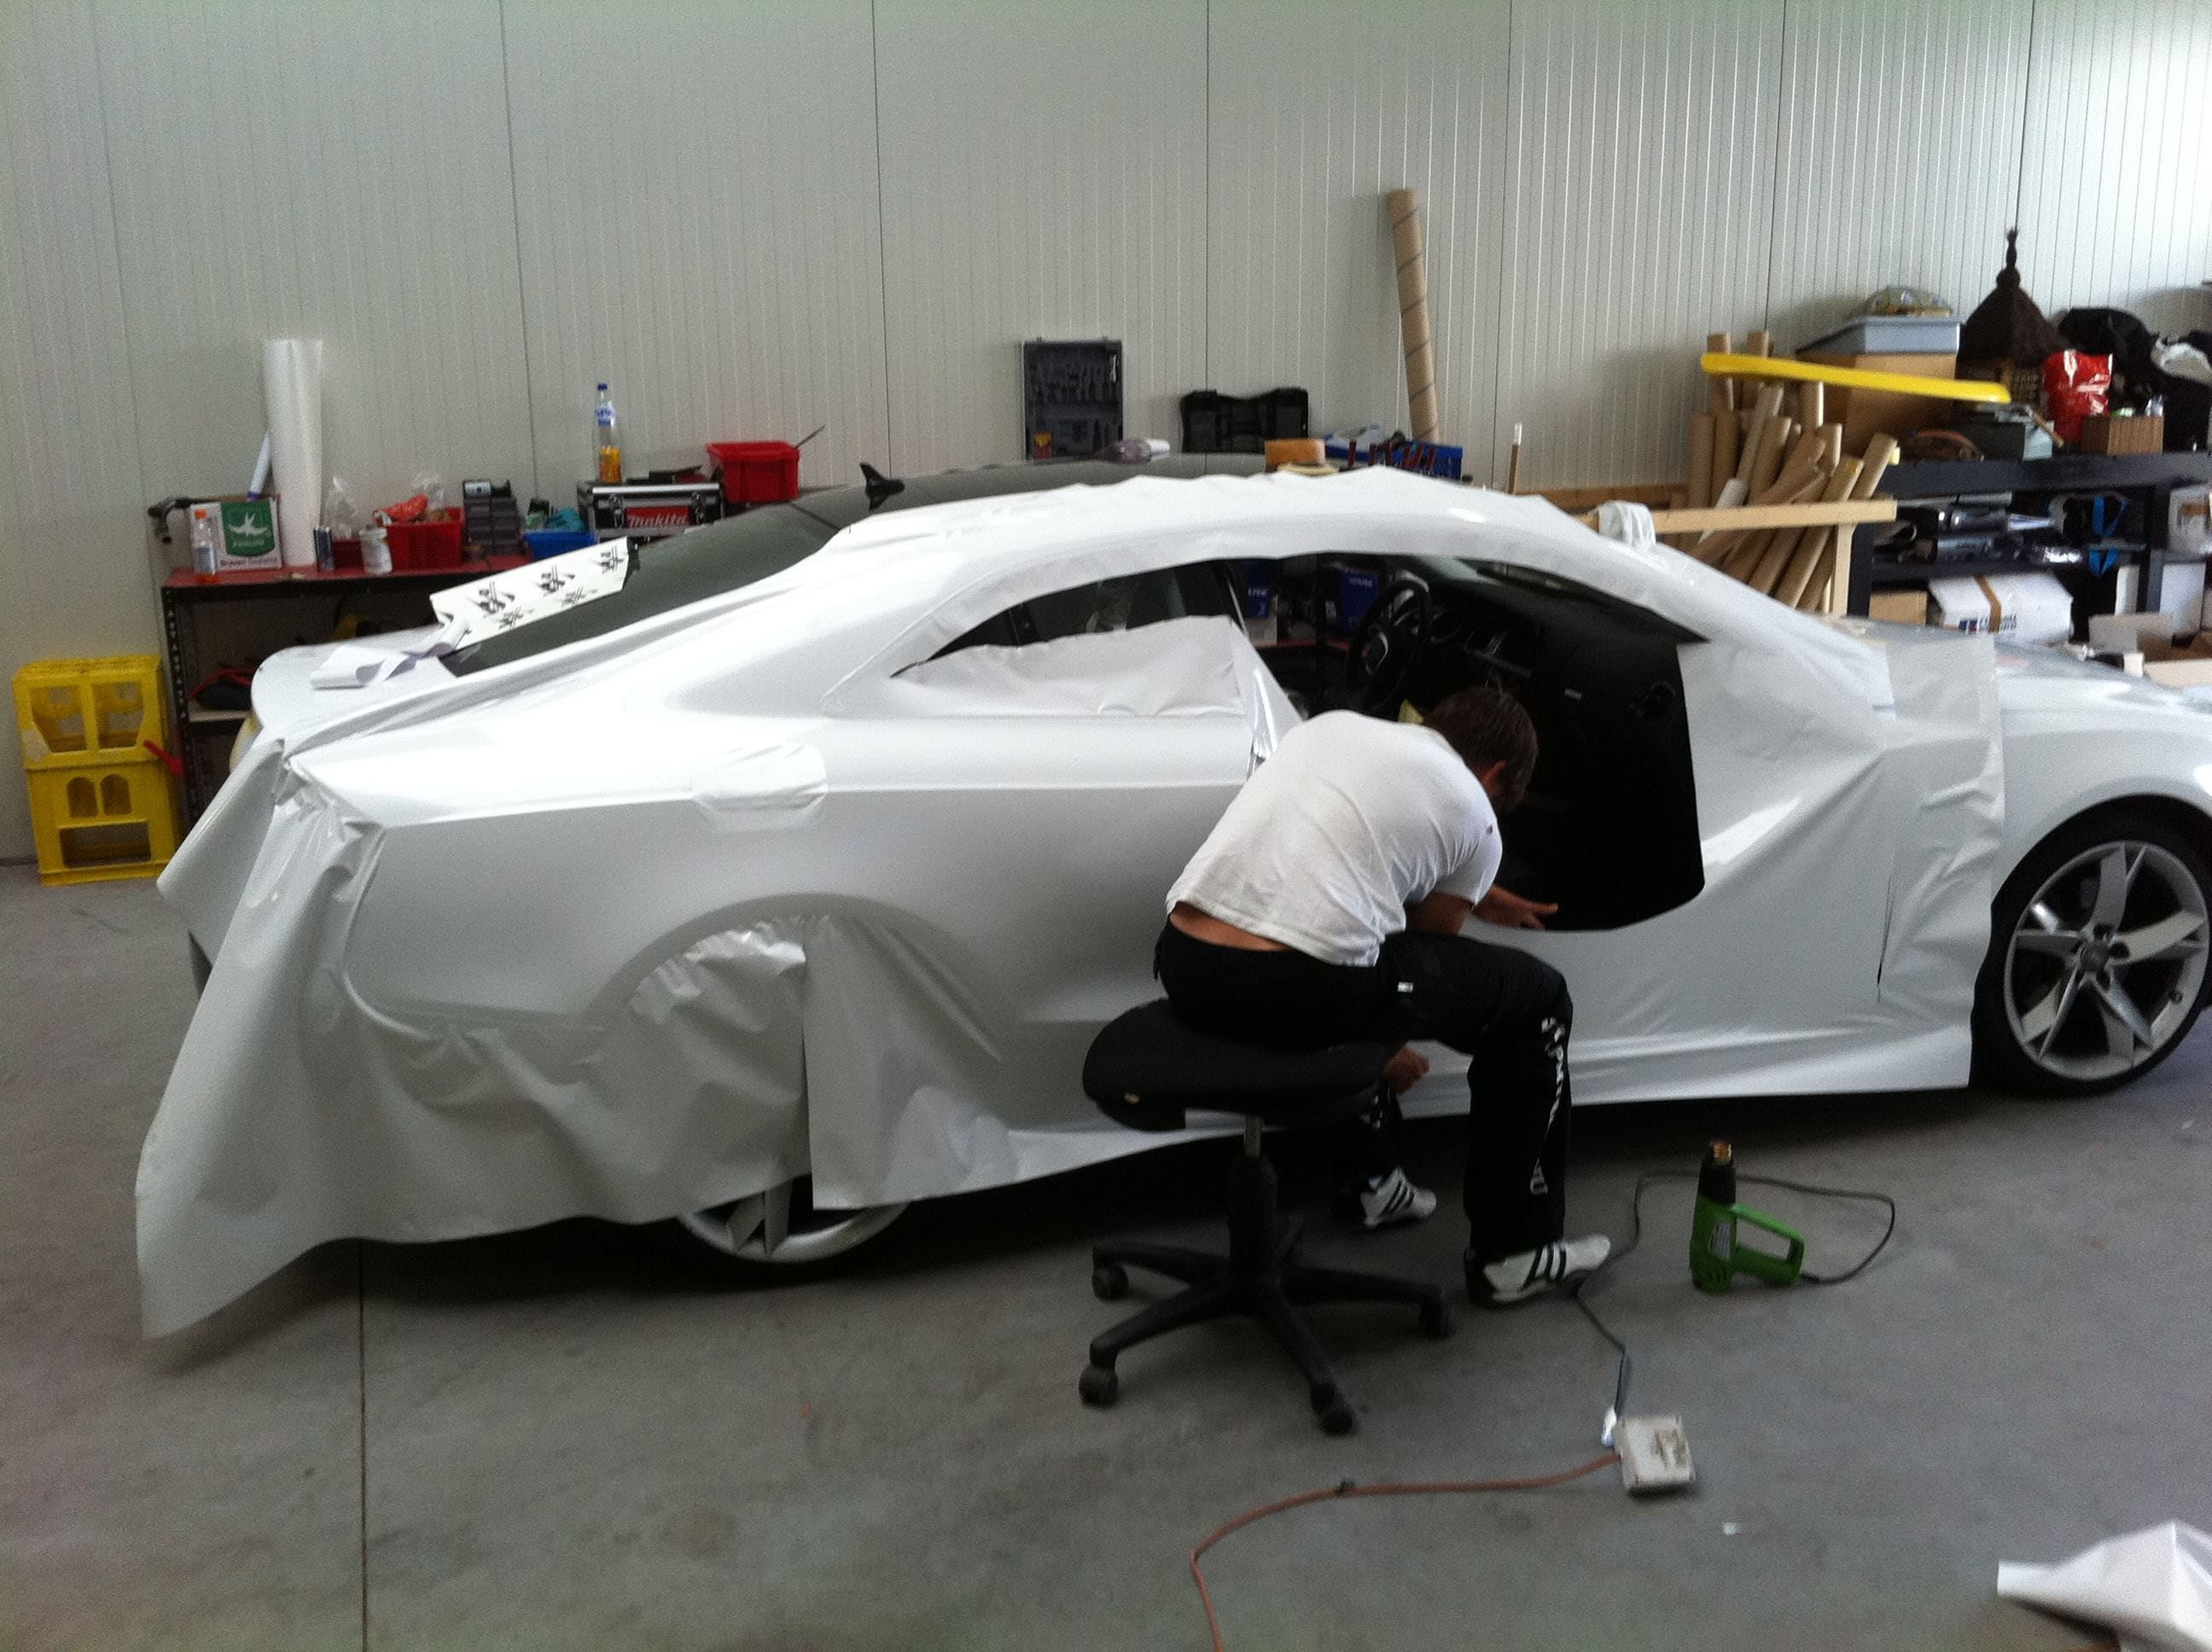 Audi A5 coupe met Metallic Witte Wrap, Carwrapping door Wrapmyride.nu Foto-nr:4662, ©2020